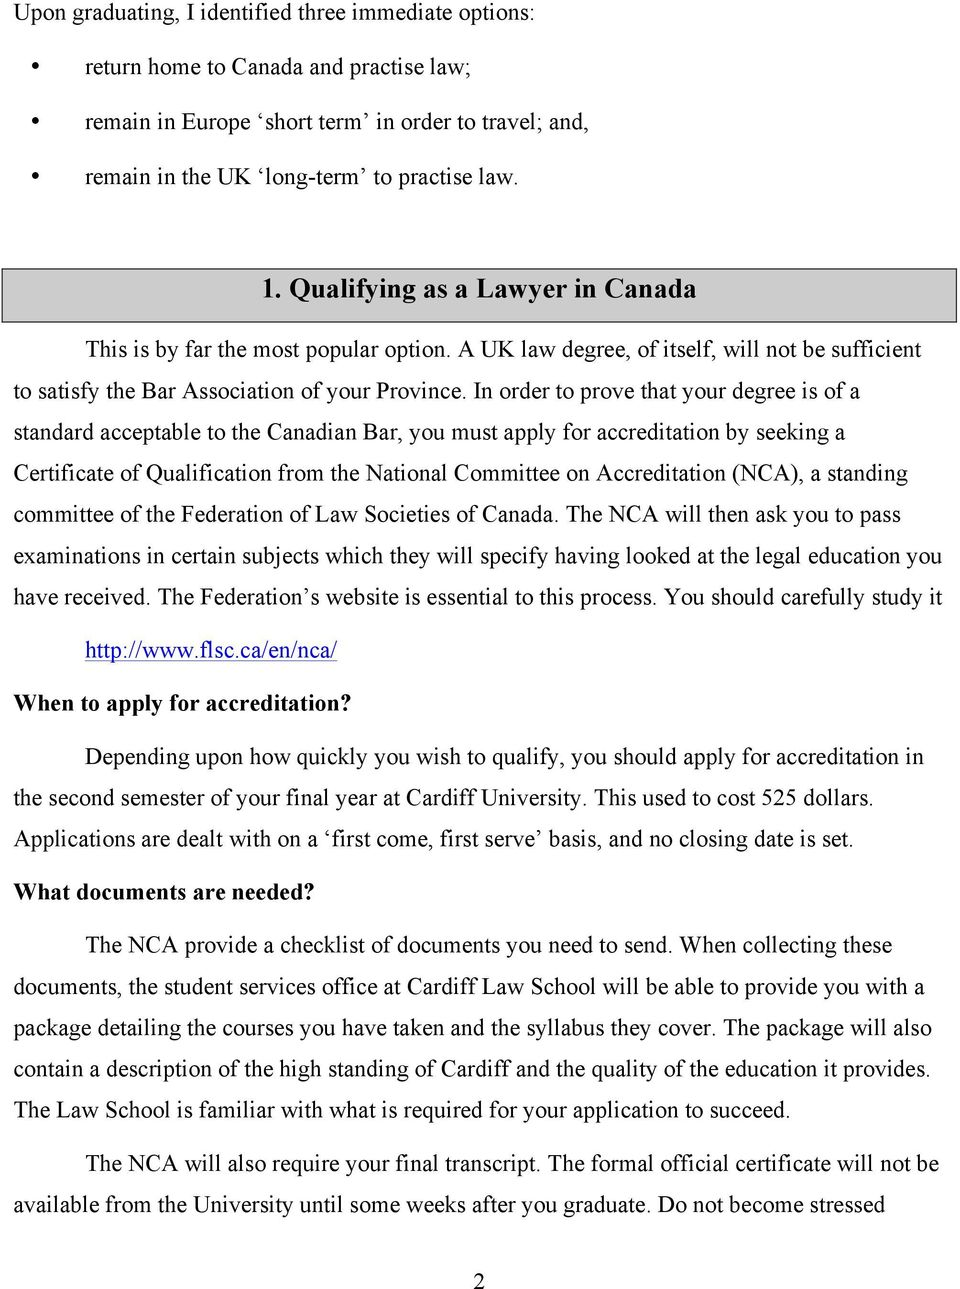 In order to prove that your degree is of a standard acceptable to the Canadian Bar, you must apply for accreditation by seeking a Certificate of Qualification from the National Committee on